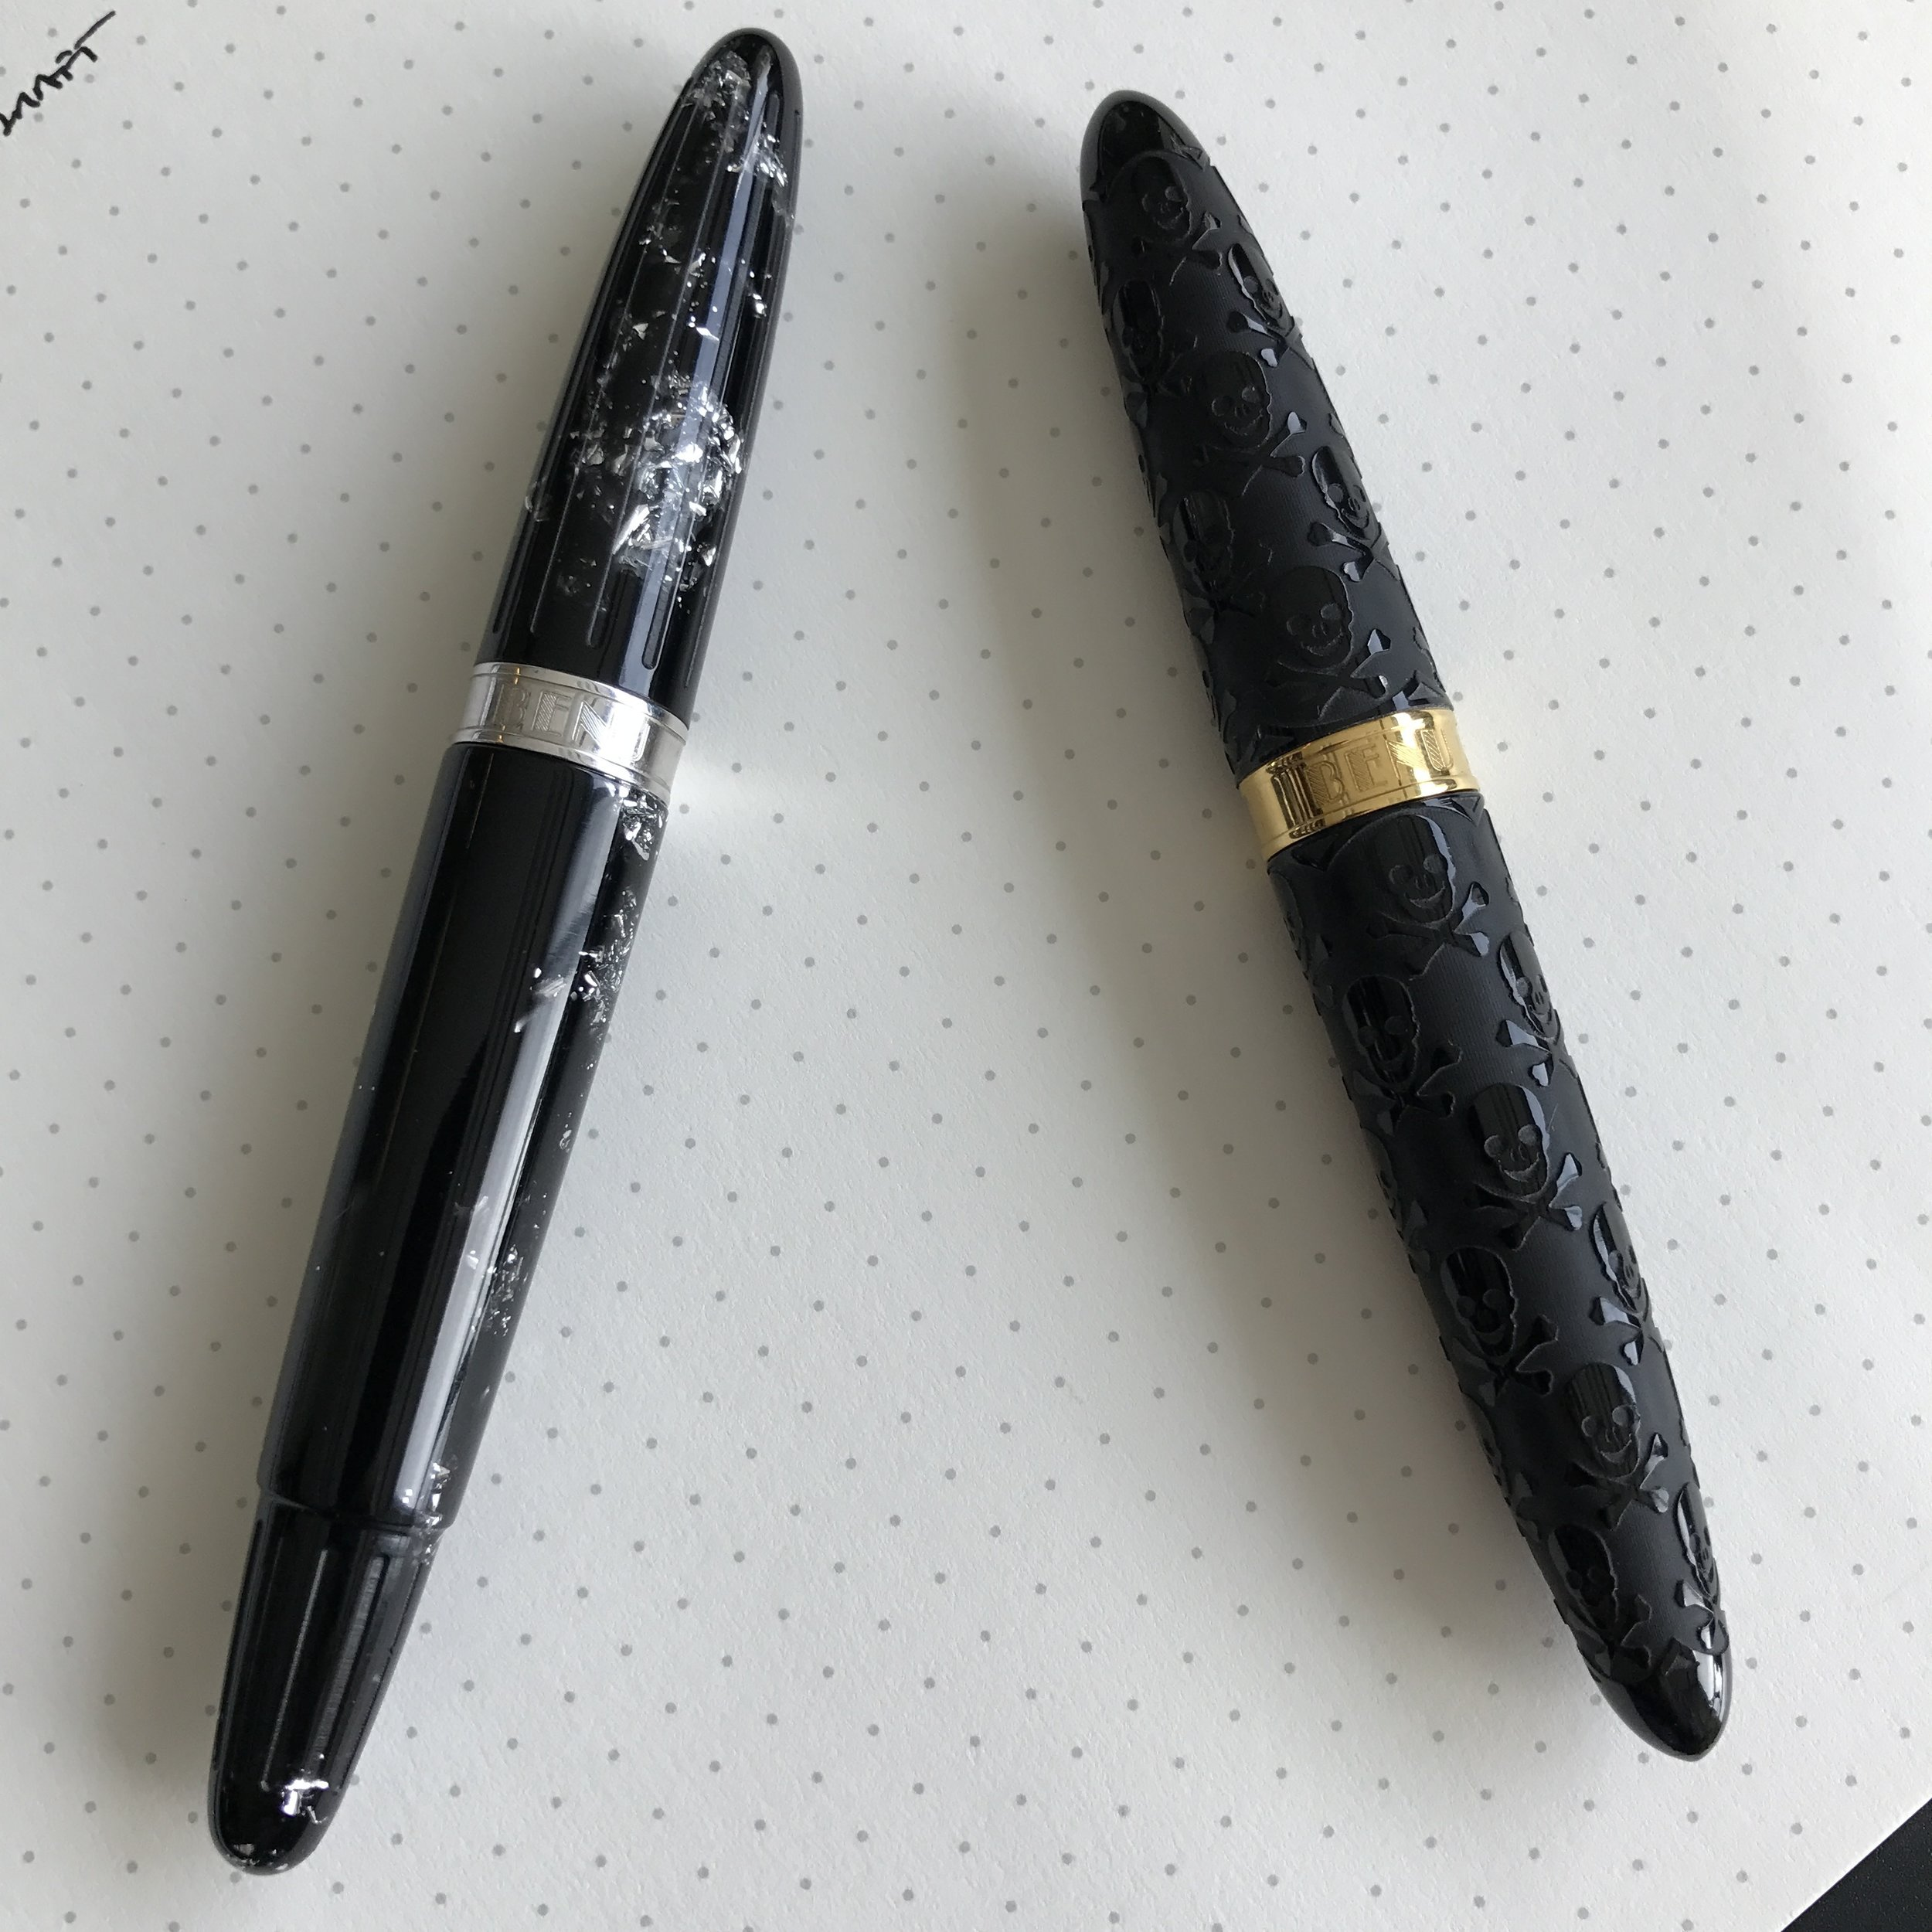 """A size comparison between the Benu """"MINIMA""""Skull Pen (right) and the """"Essence"""" in Silver Galaxy (left)"""